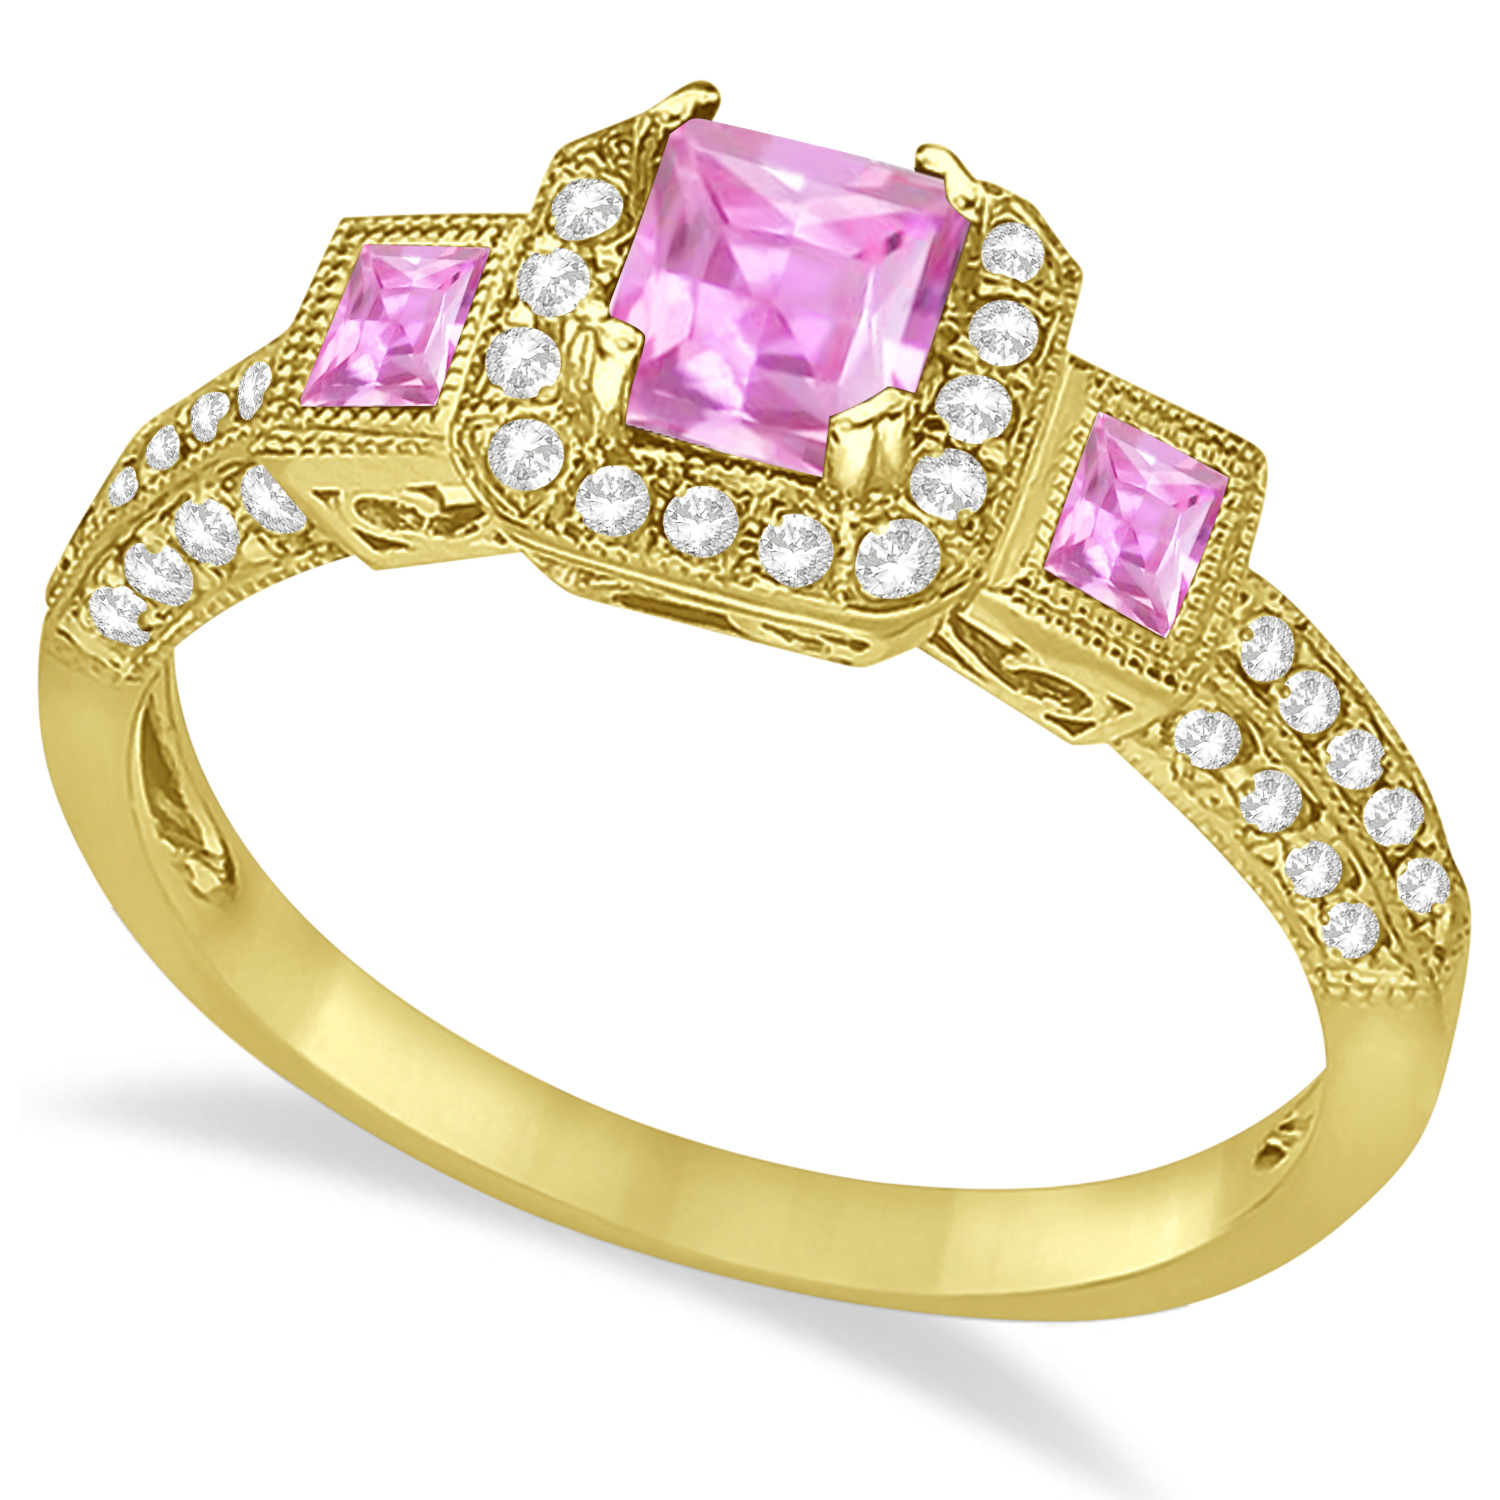 pink sapphire engagement ring 14k yellow gold 1 35ct